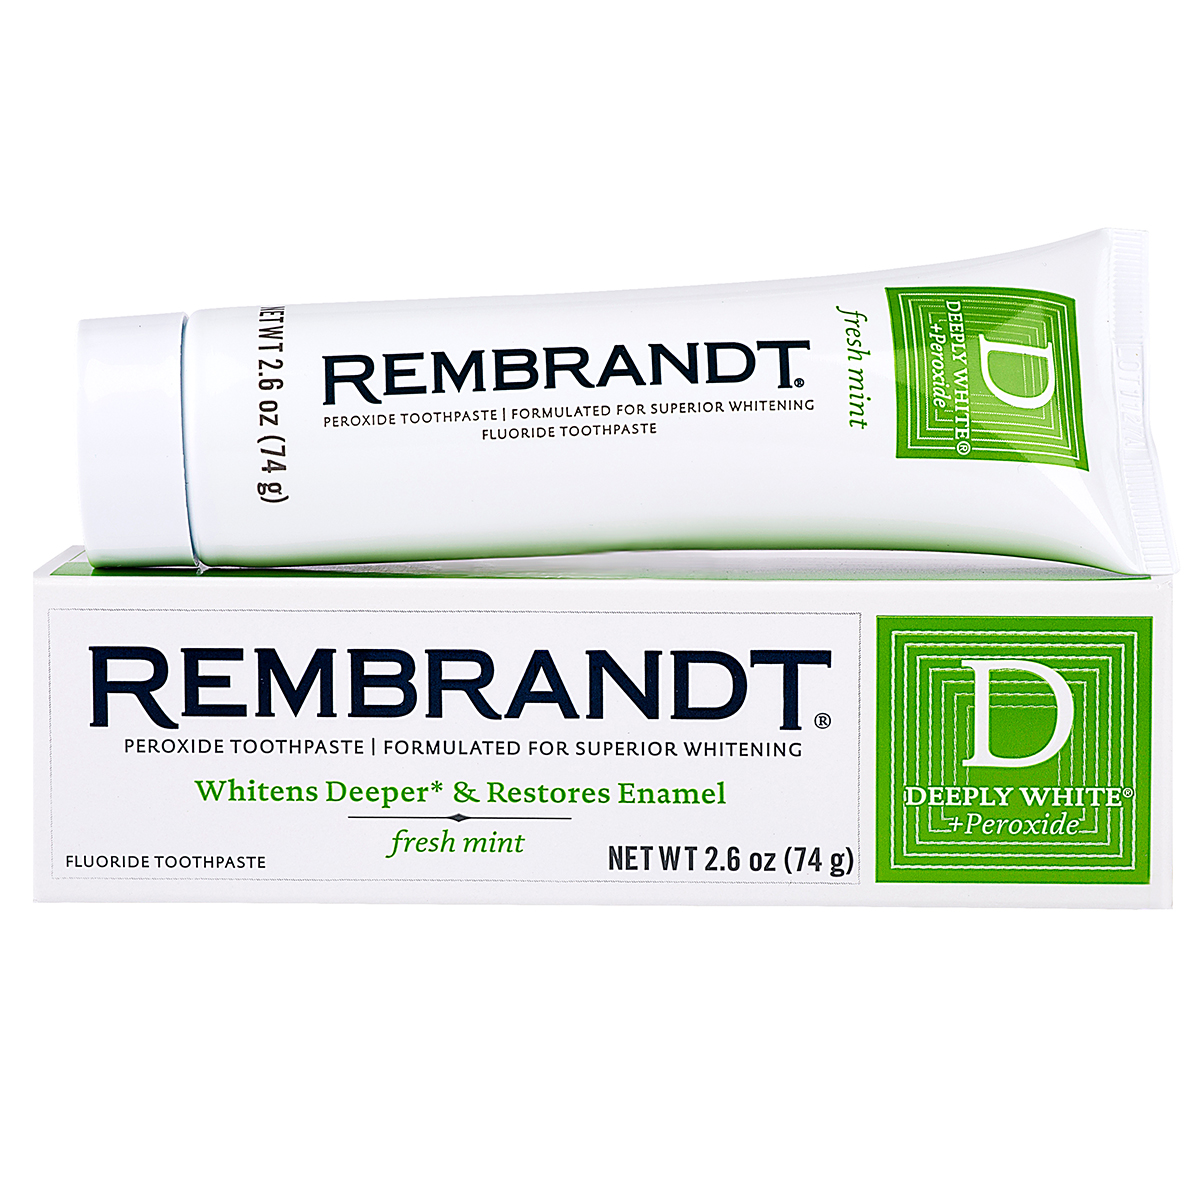 Rembrandt Deeply White + Peroxide Whitening Toothpaste 2.6 oz (pack of 6)